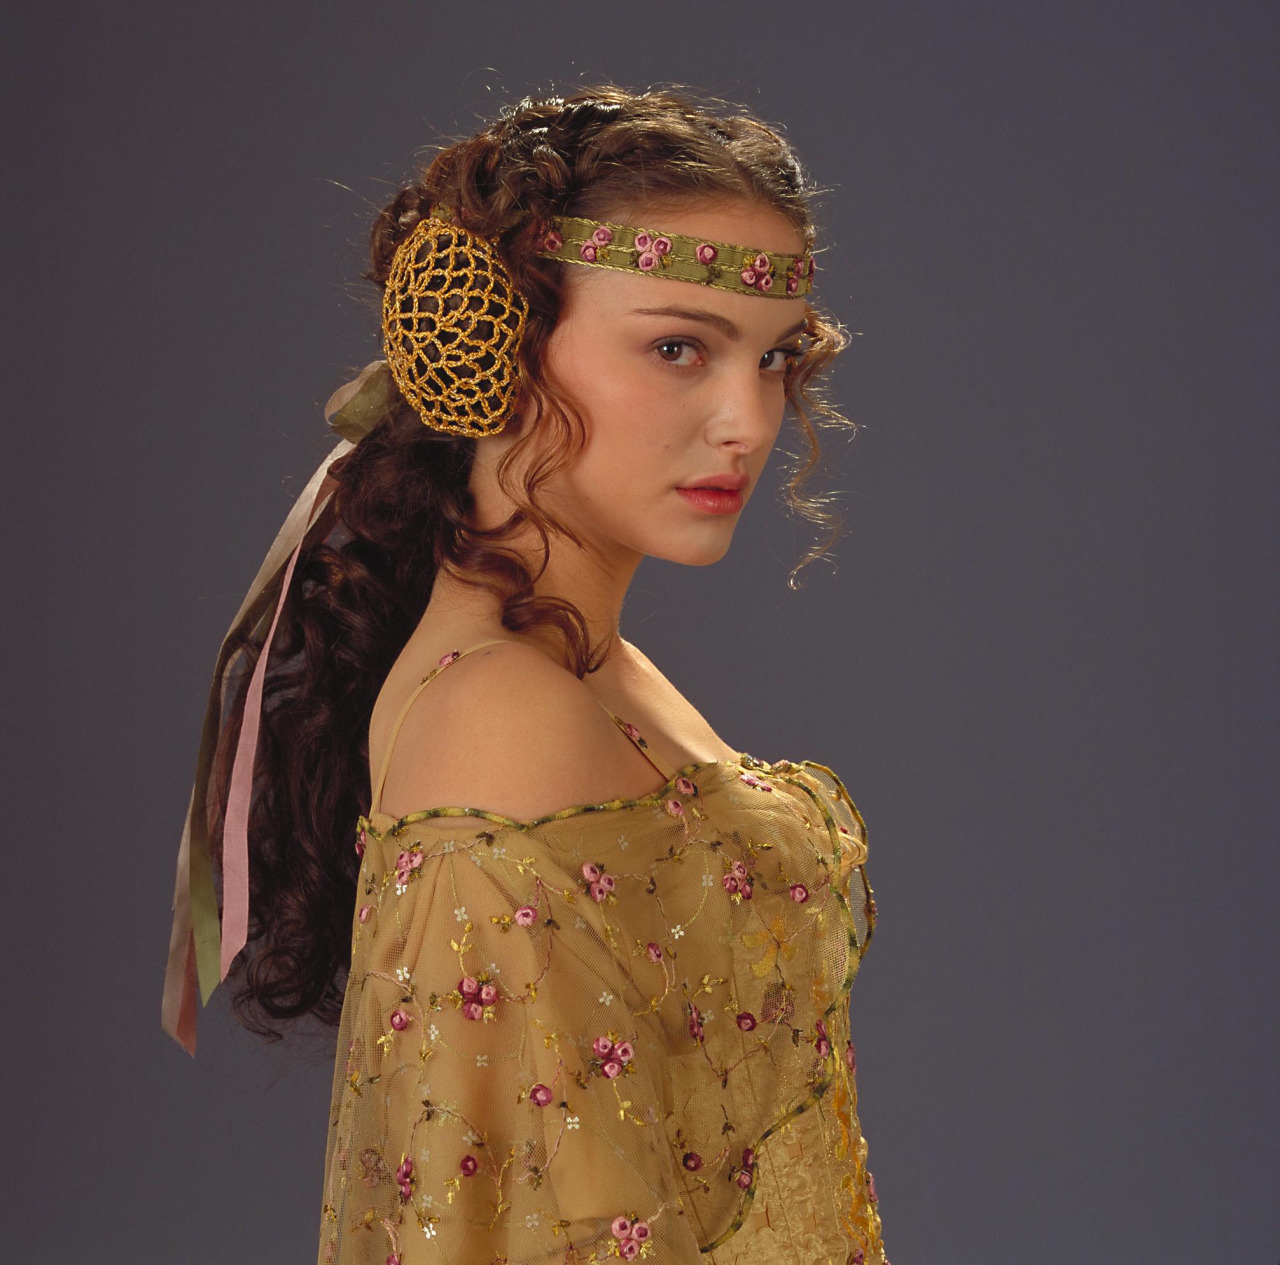 Star Wars 2 Revenge Padme Amidala Of The Sith Cosplaya Costume outfit